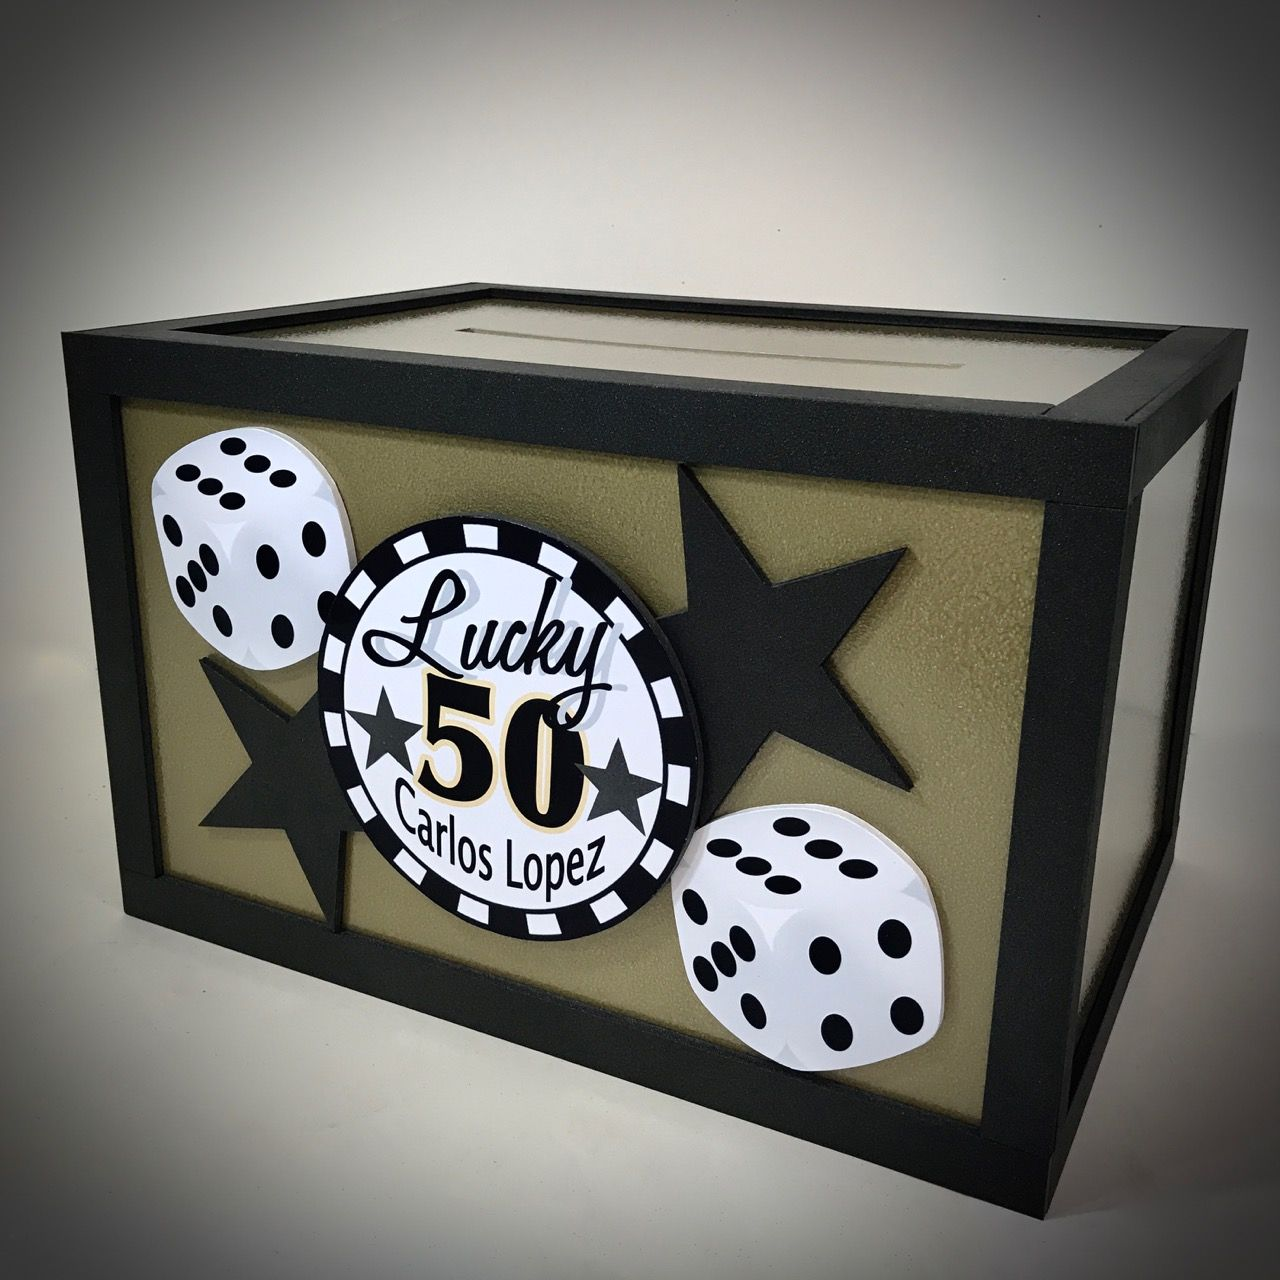 50th Birthday Party Gift Card Box With A Vegas Gambling Theme That